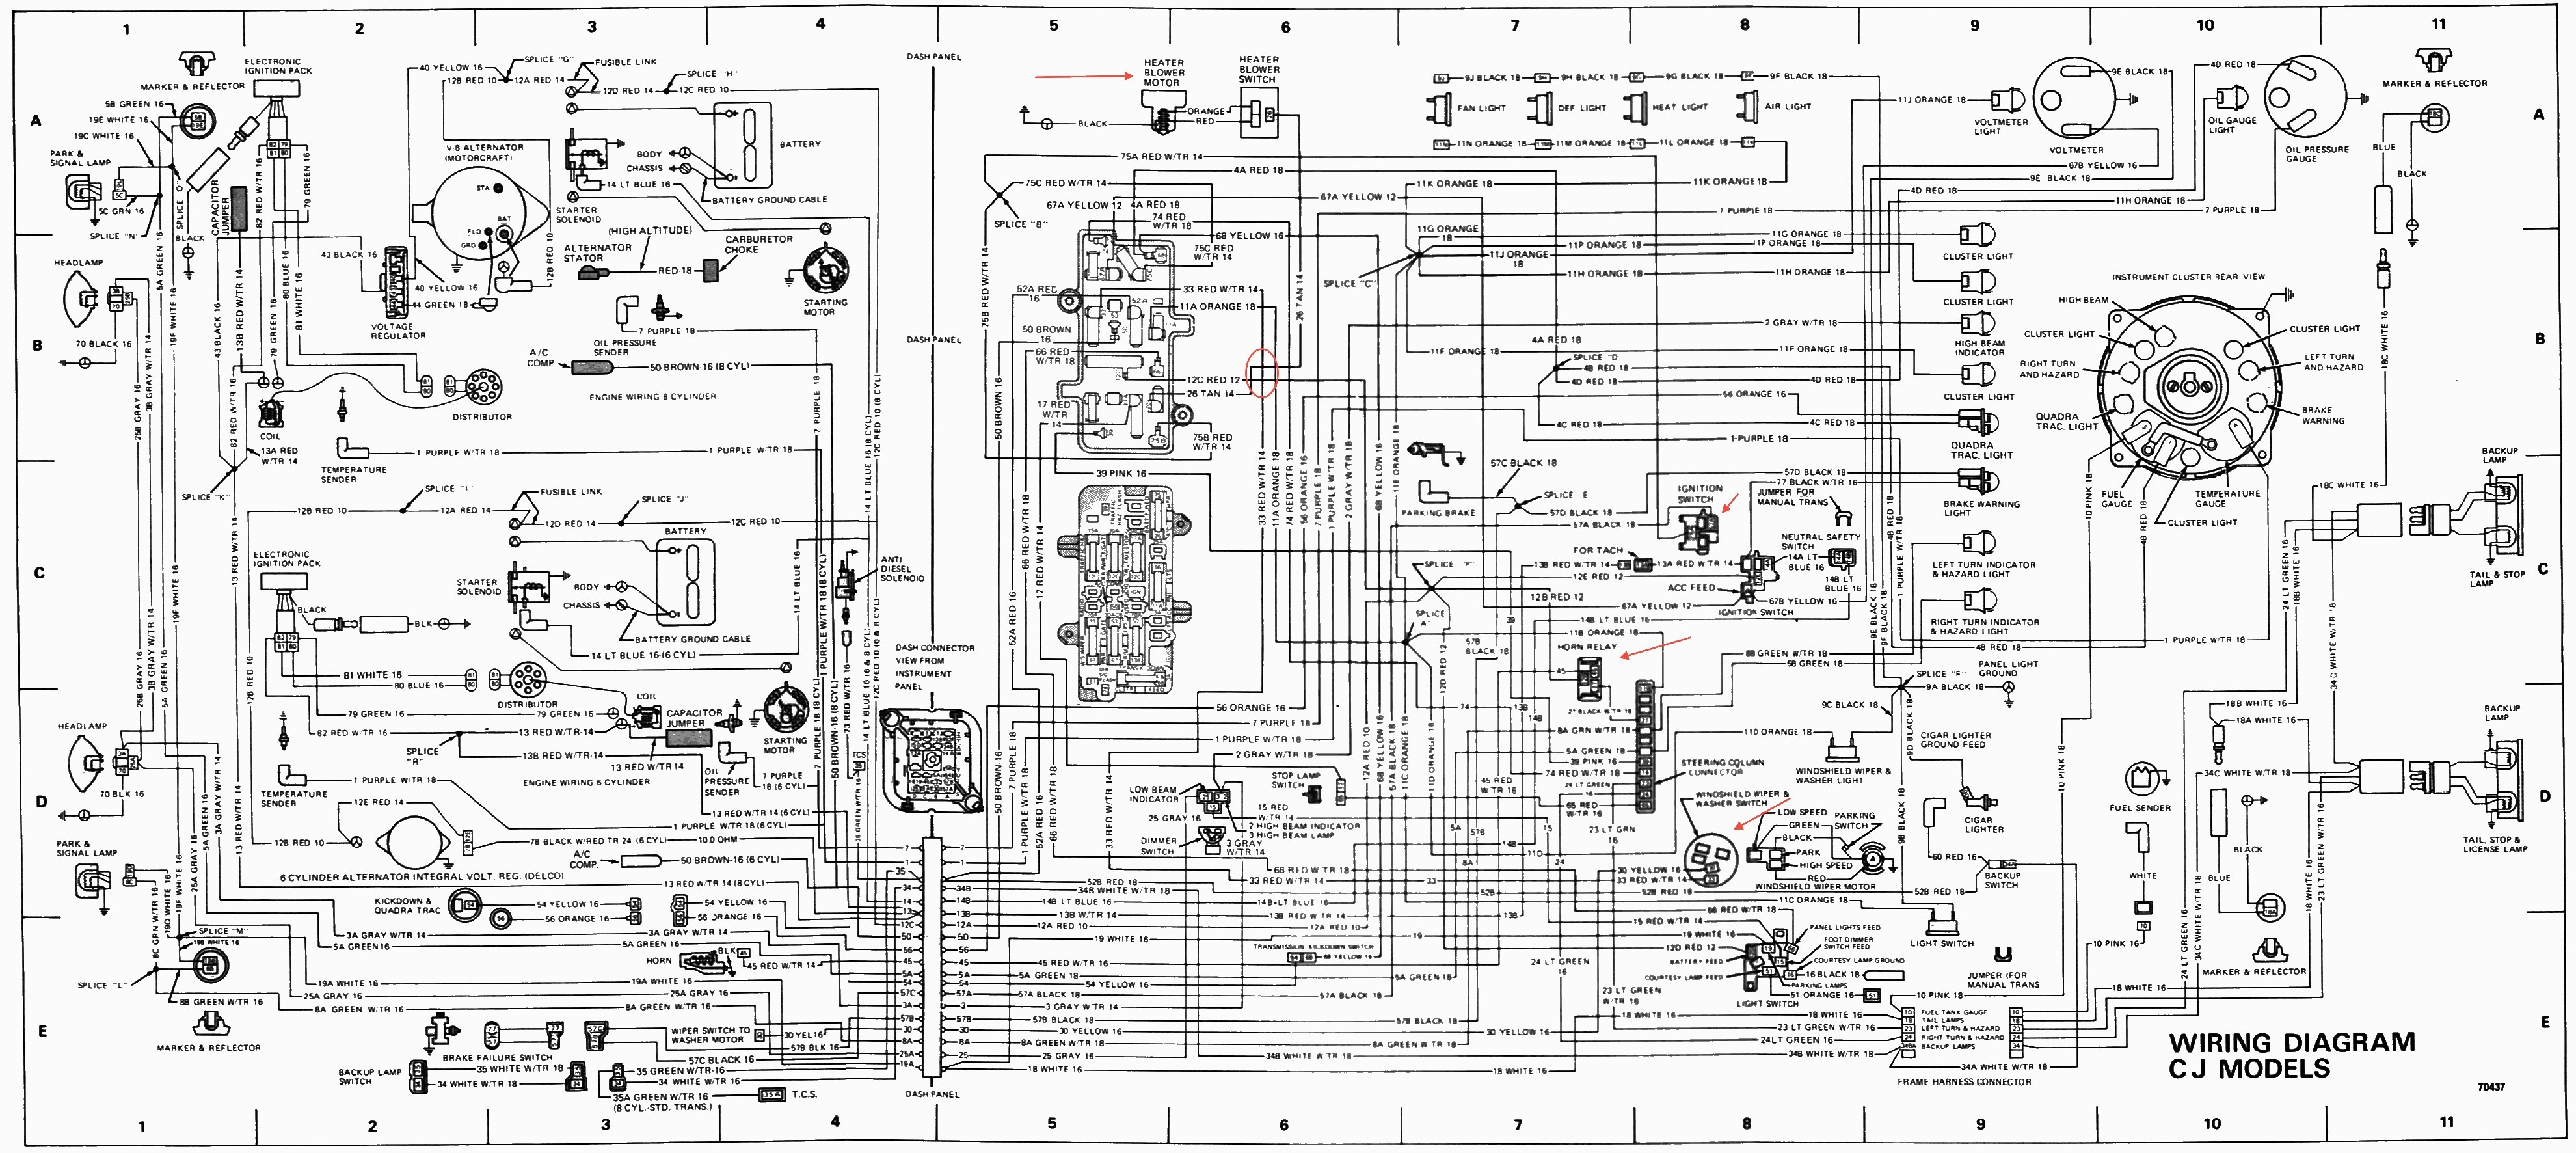 Jeep 4 0 Engine Diagram My Wiring Cj7 Harness Charge Indicator Light Oil Pressure Of